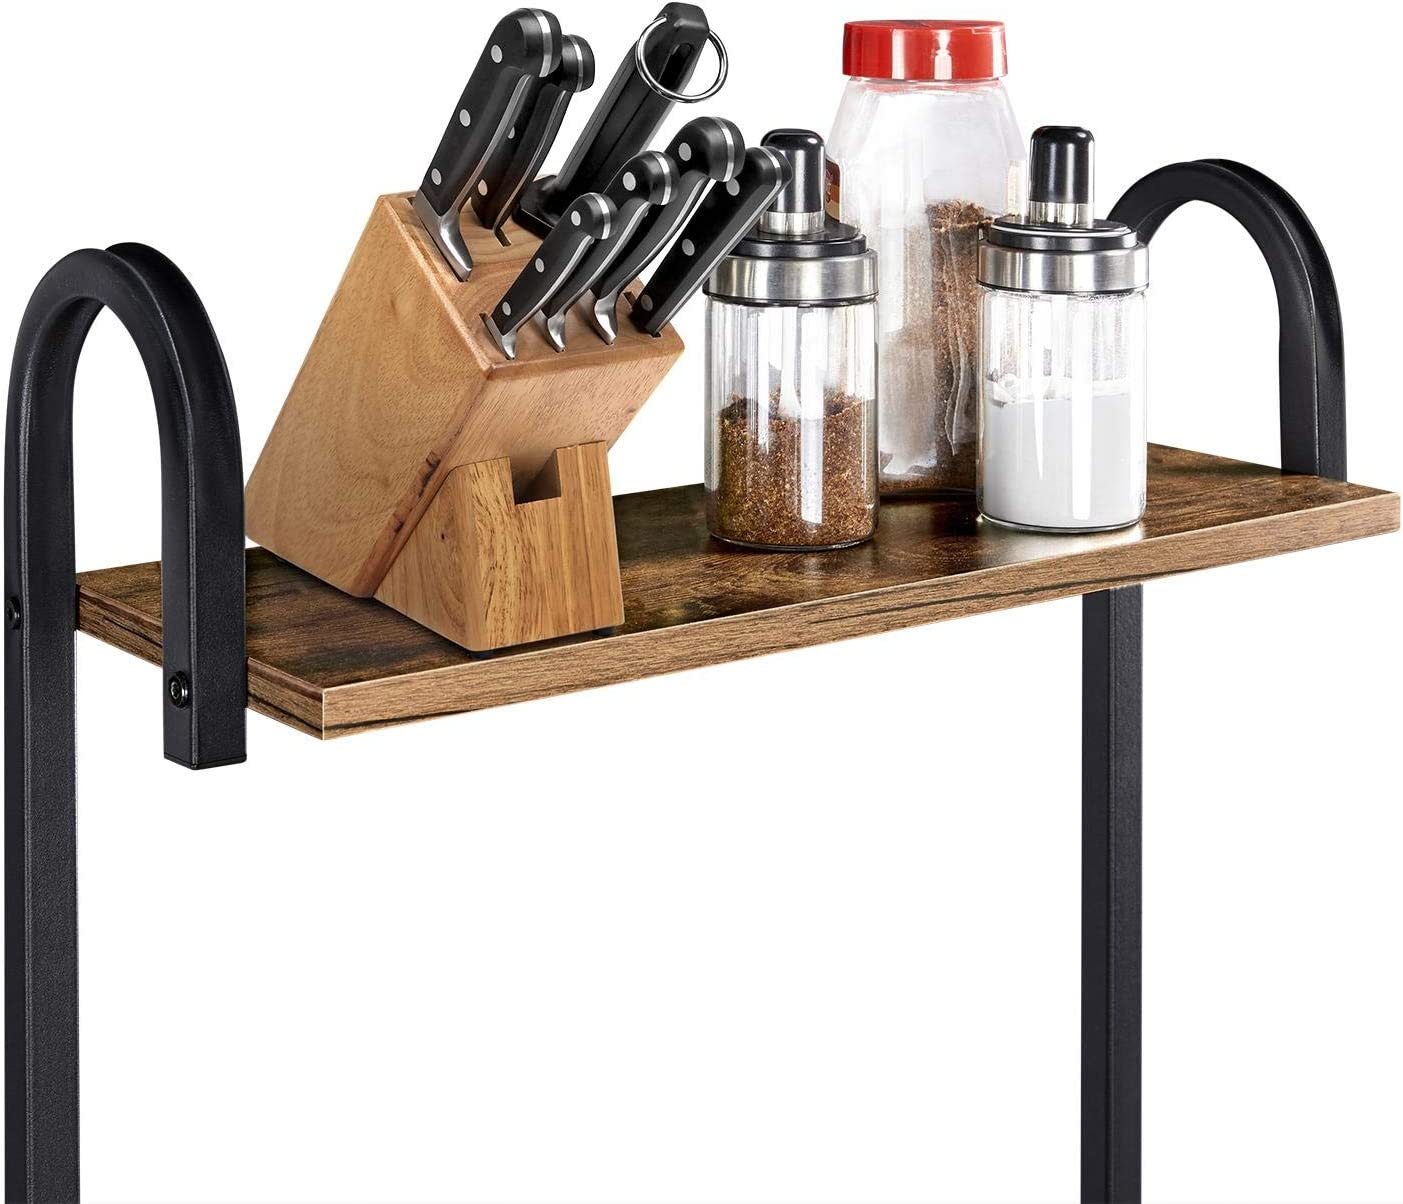 Yaheetech 35.5 inch Industrial Kitchen Baker's Rack, 4-Tier Microwave Oven Stand Workstation Organizer Shelf with Metal Frame, Utility Storage Shelf for Spices with 10 S-Hooks: Kitchen & Dining